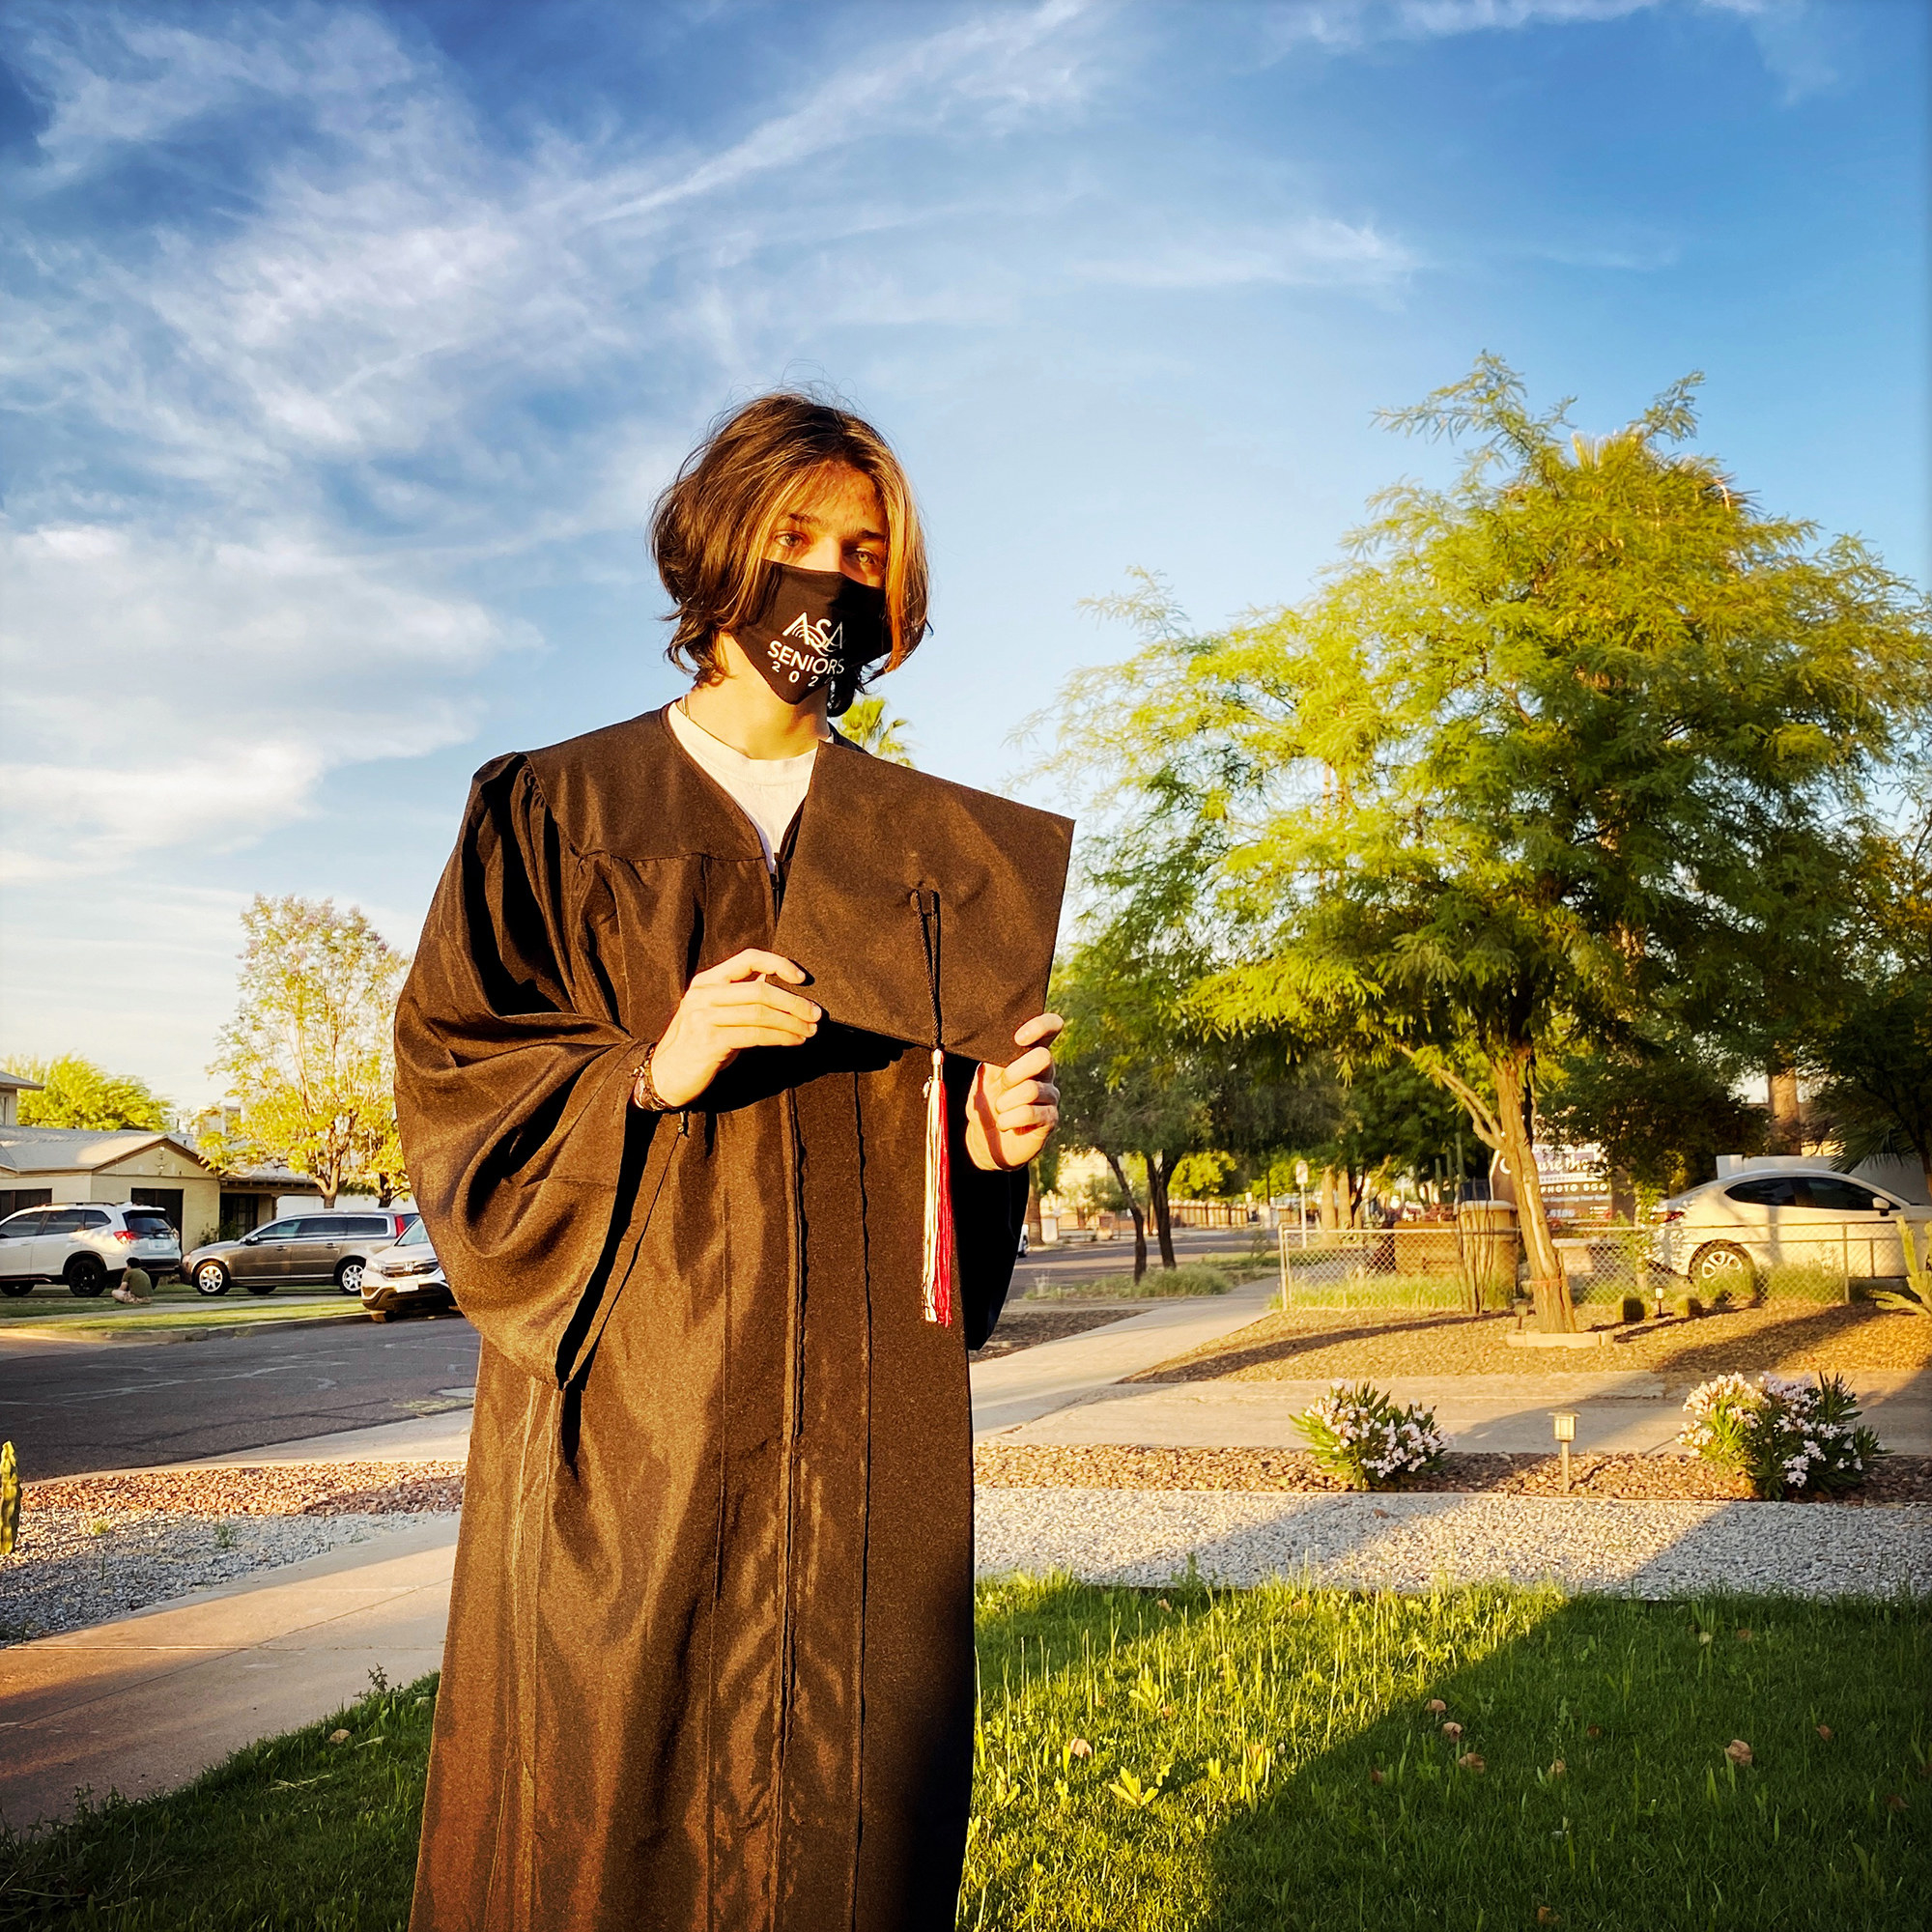 A teenager in a graduation cap and gown stands during sundown, casting a long shadow